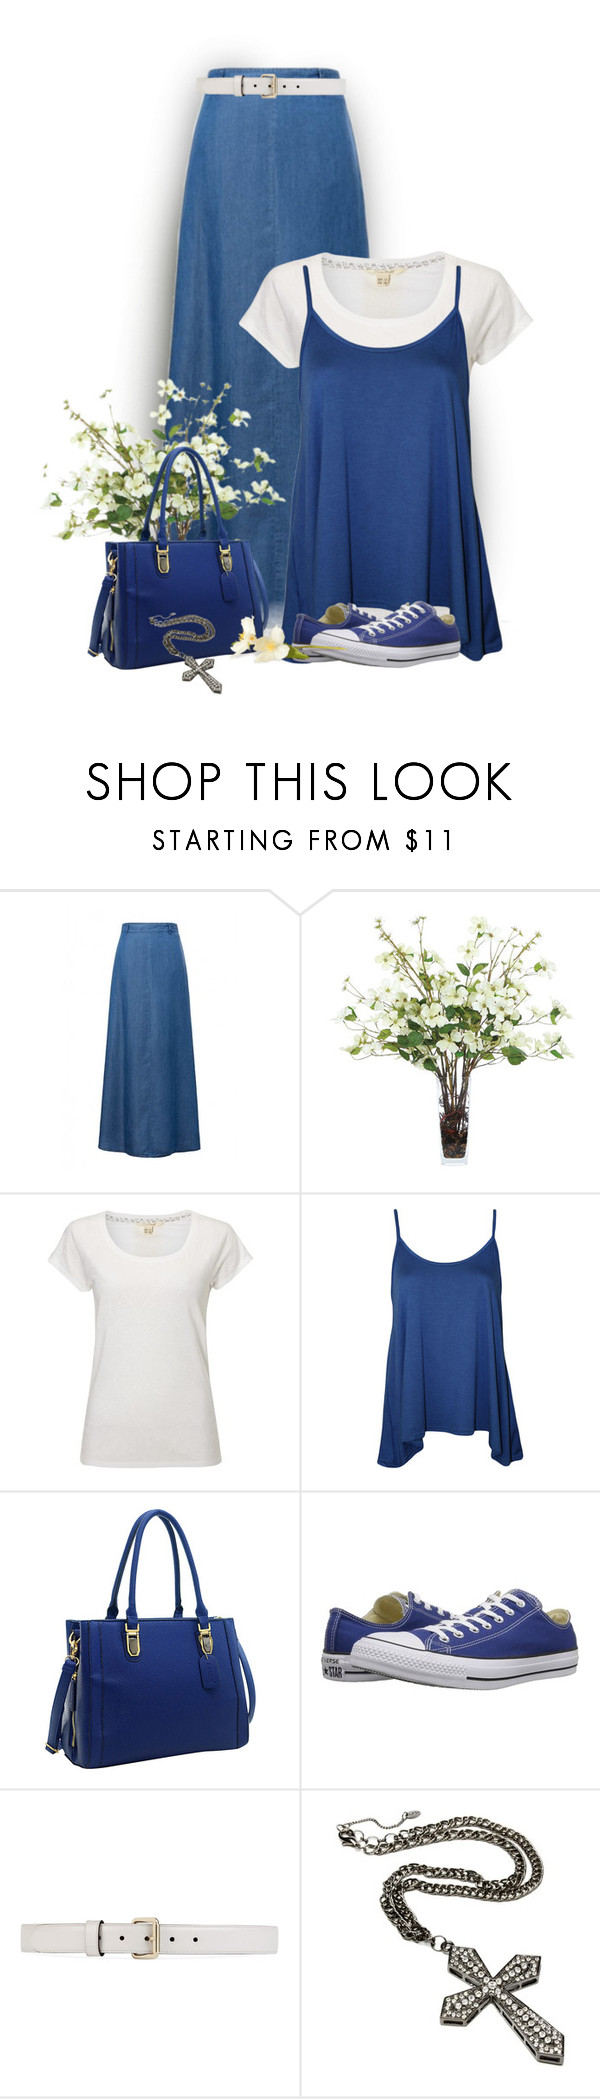 """Untitled #1073"" by tinkertot ❤ liked on Polyvore featuring Trilogy, WithChic, Lux-Art Silks, White Stuff, WearAll, Dasein, Converse, Gucci and Amrita Singh"